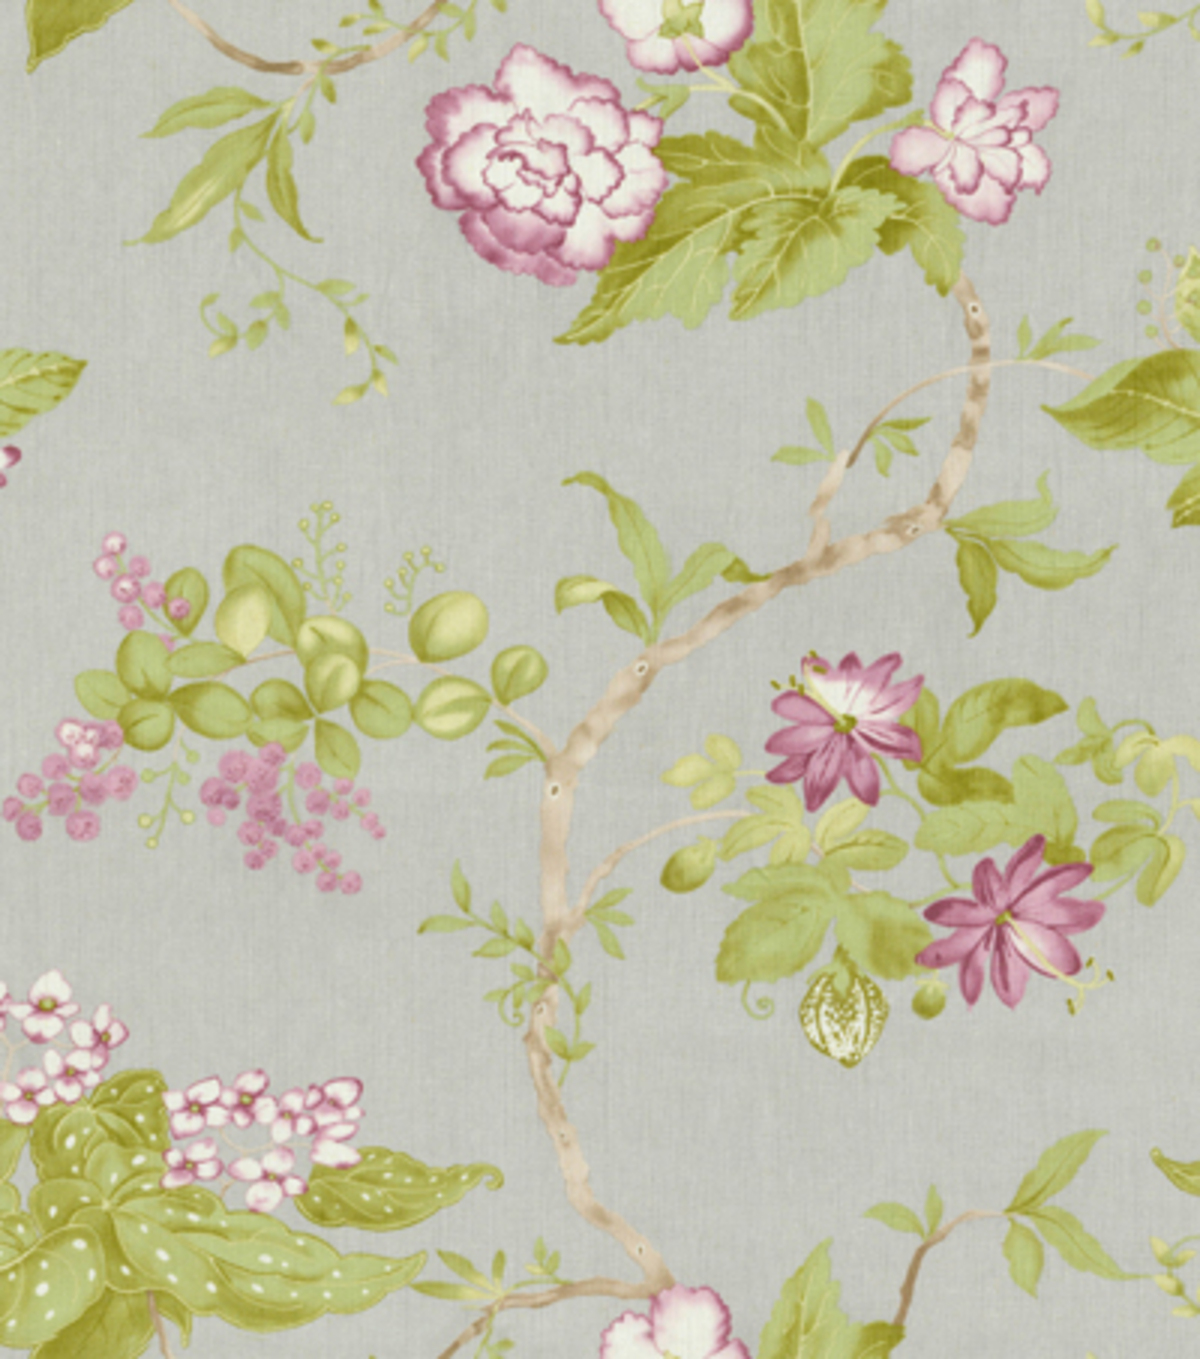 Home Decor 8\u0022x8\u0022 Fabric Swatch-Covington Imperial